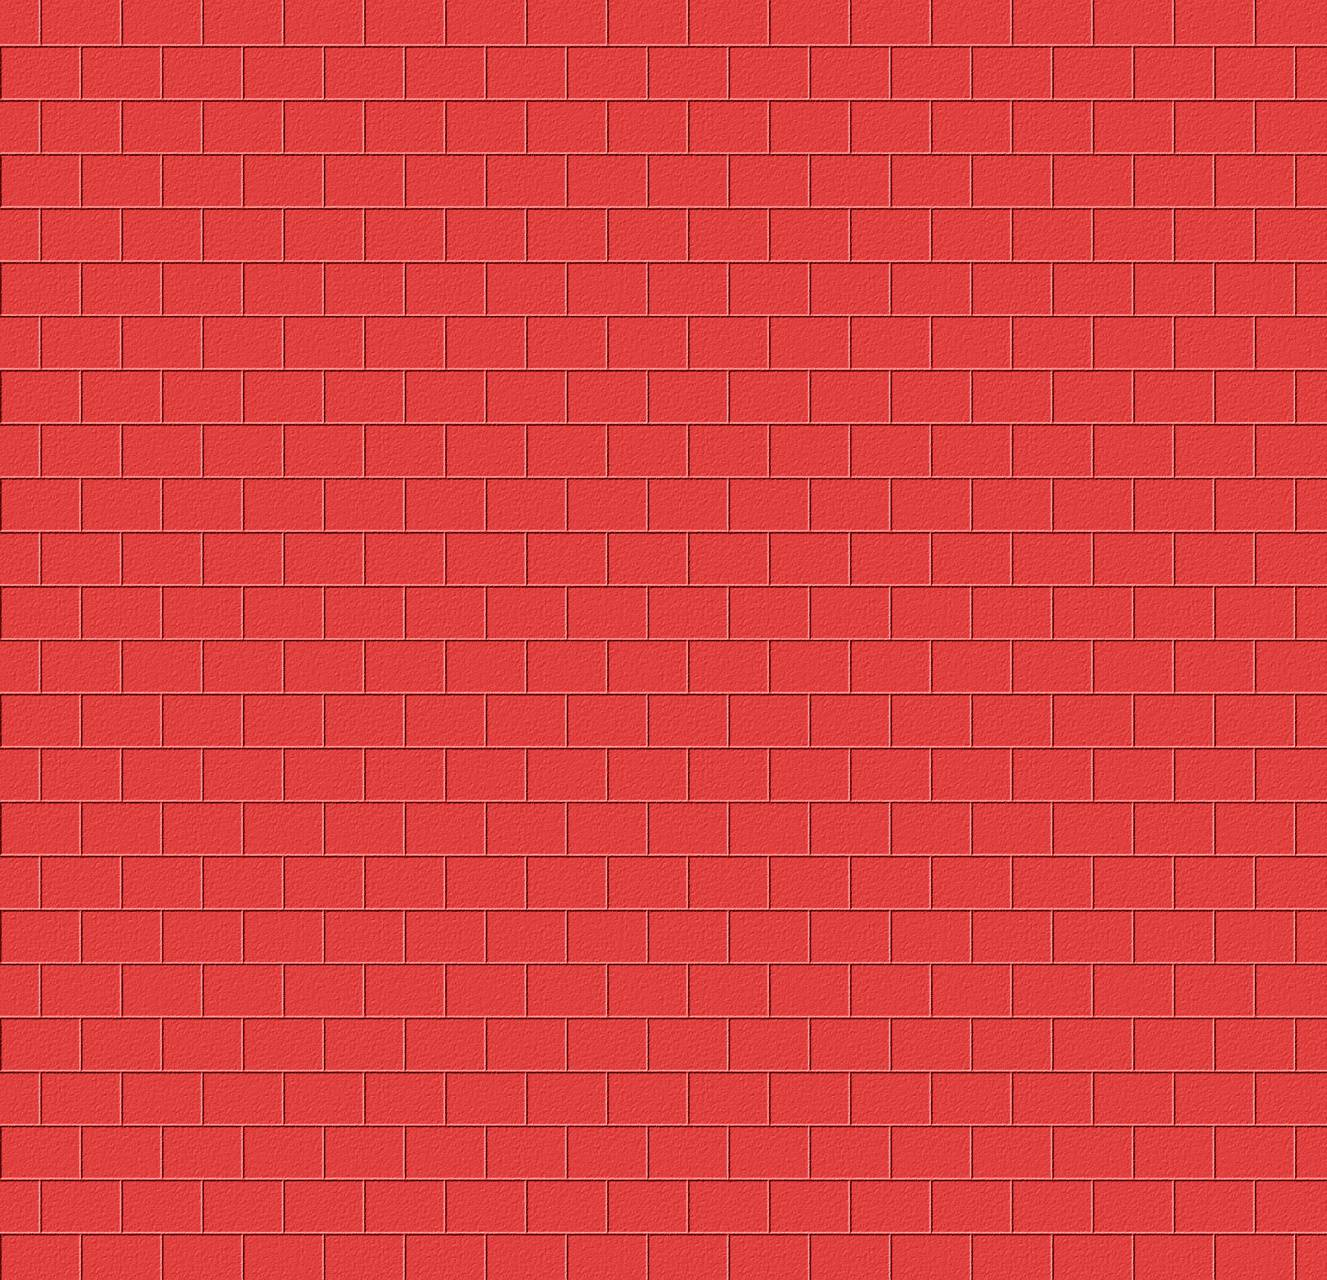 Red Wall iPhone 2018